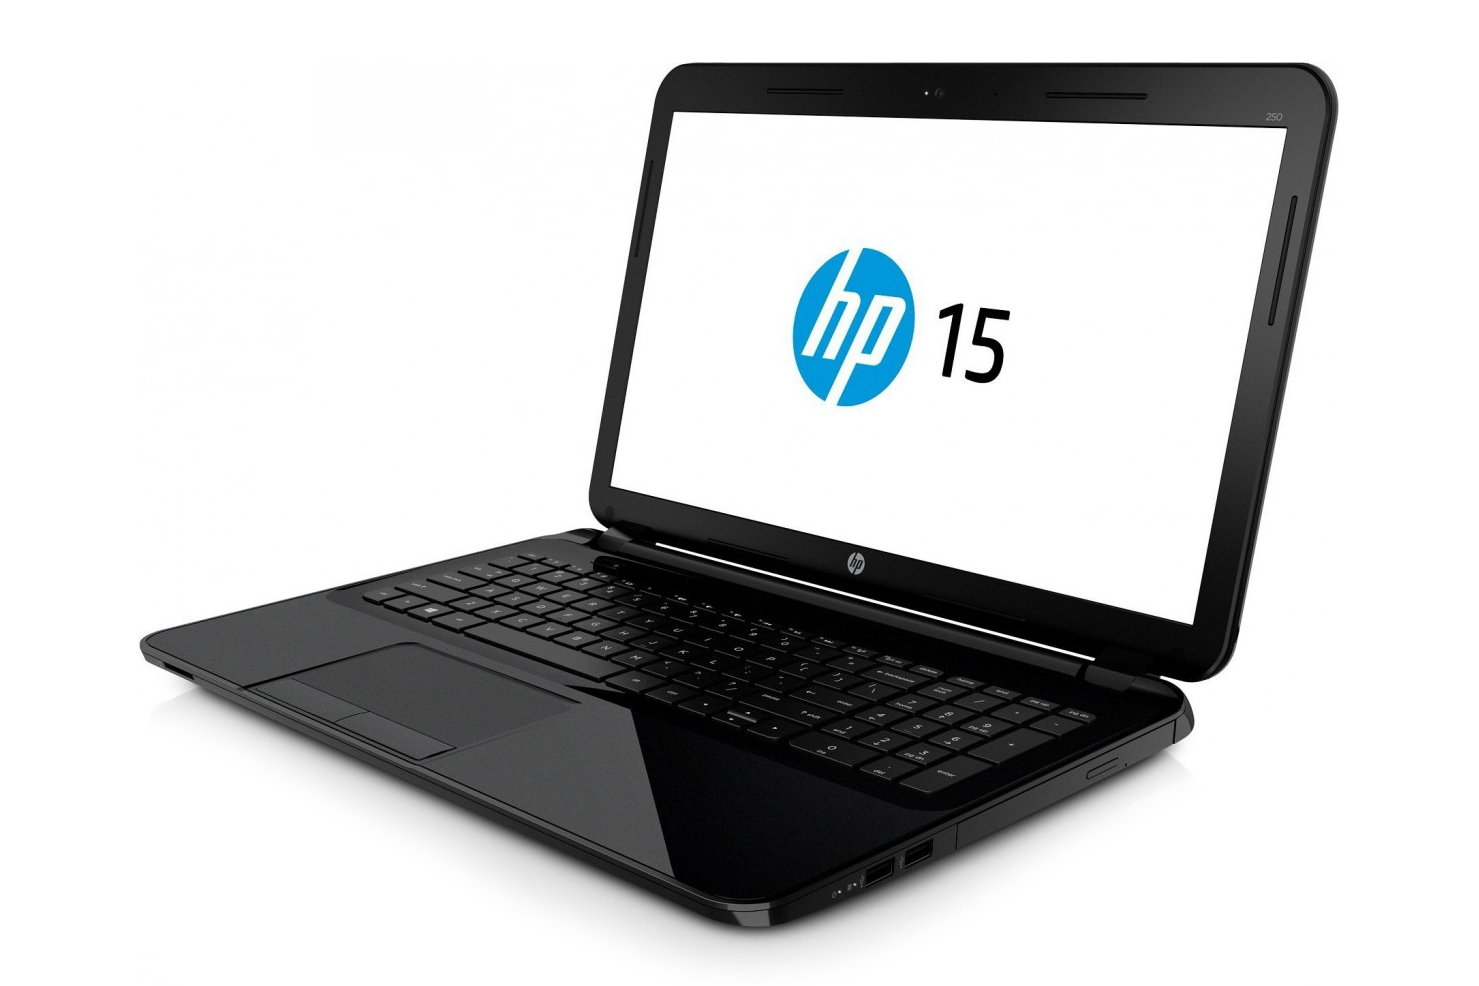 HP 15-G000SM DRIVERS FOR WINDOWS 7